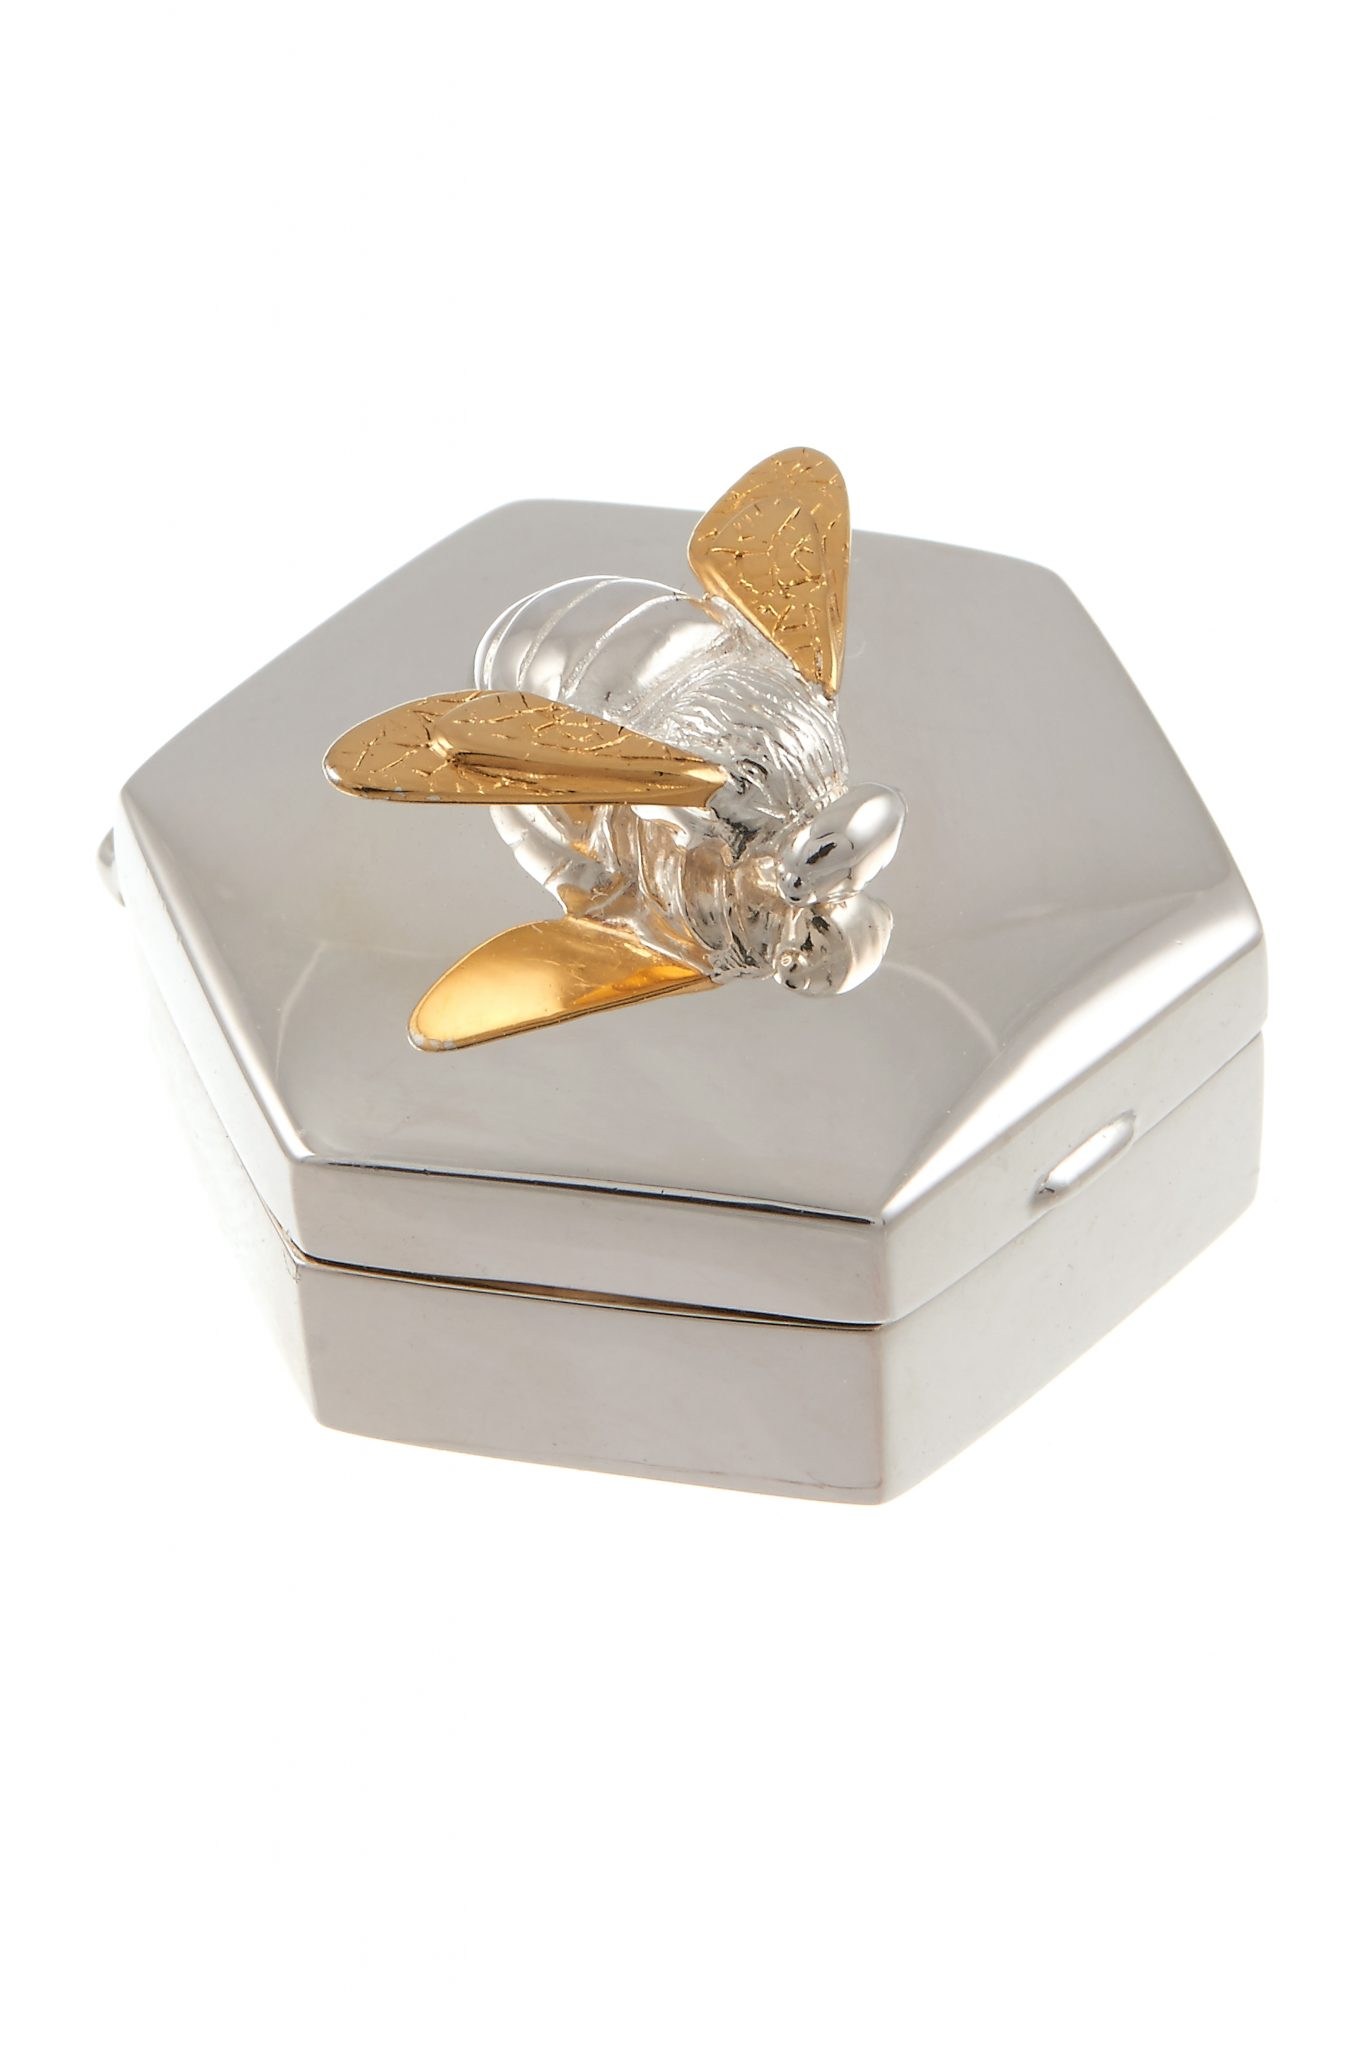 silver baby birthday christening gift trinket box baby gifts. Black Bedroom Furniture Sets. Home Design Ideas